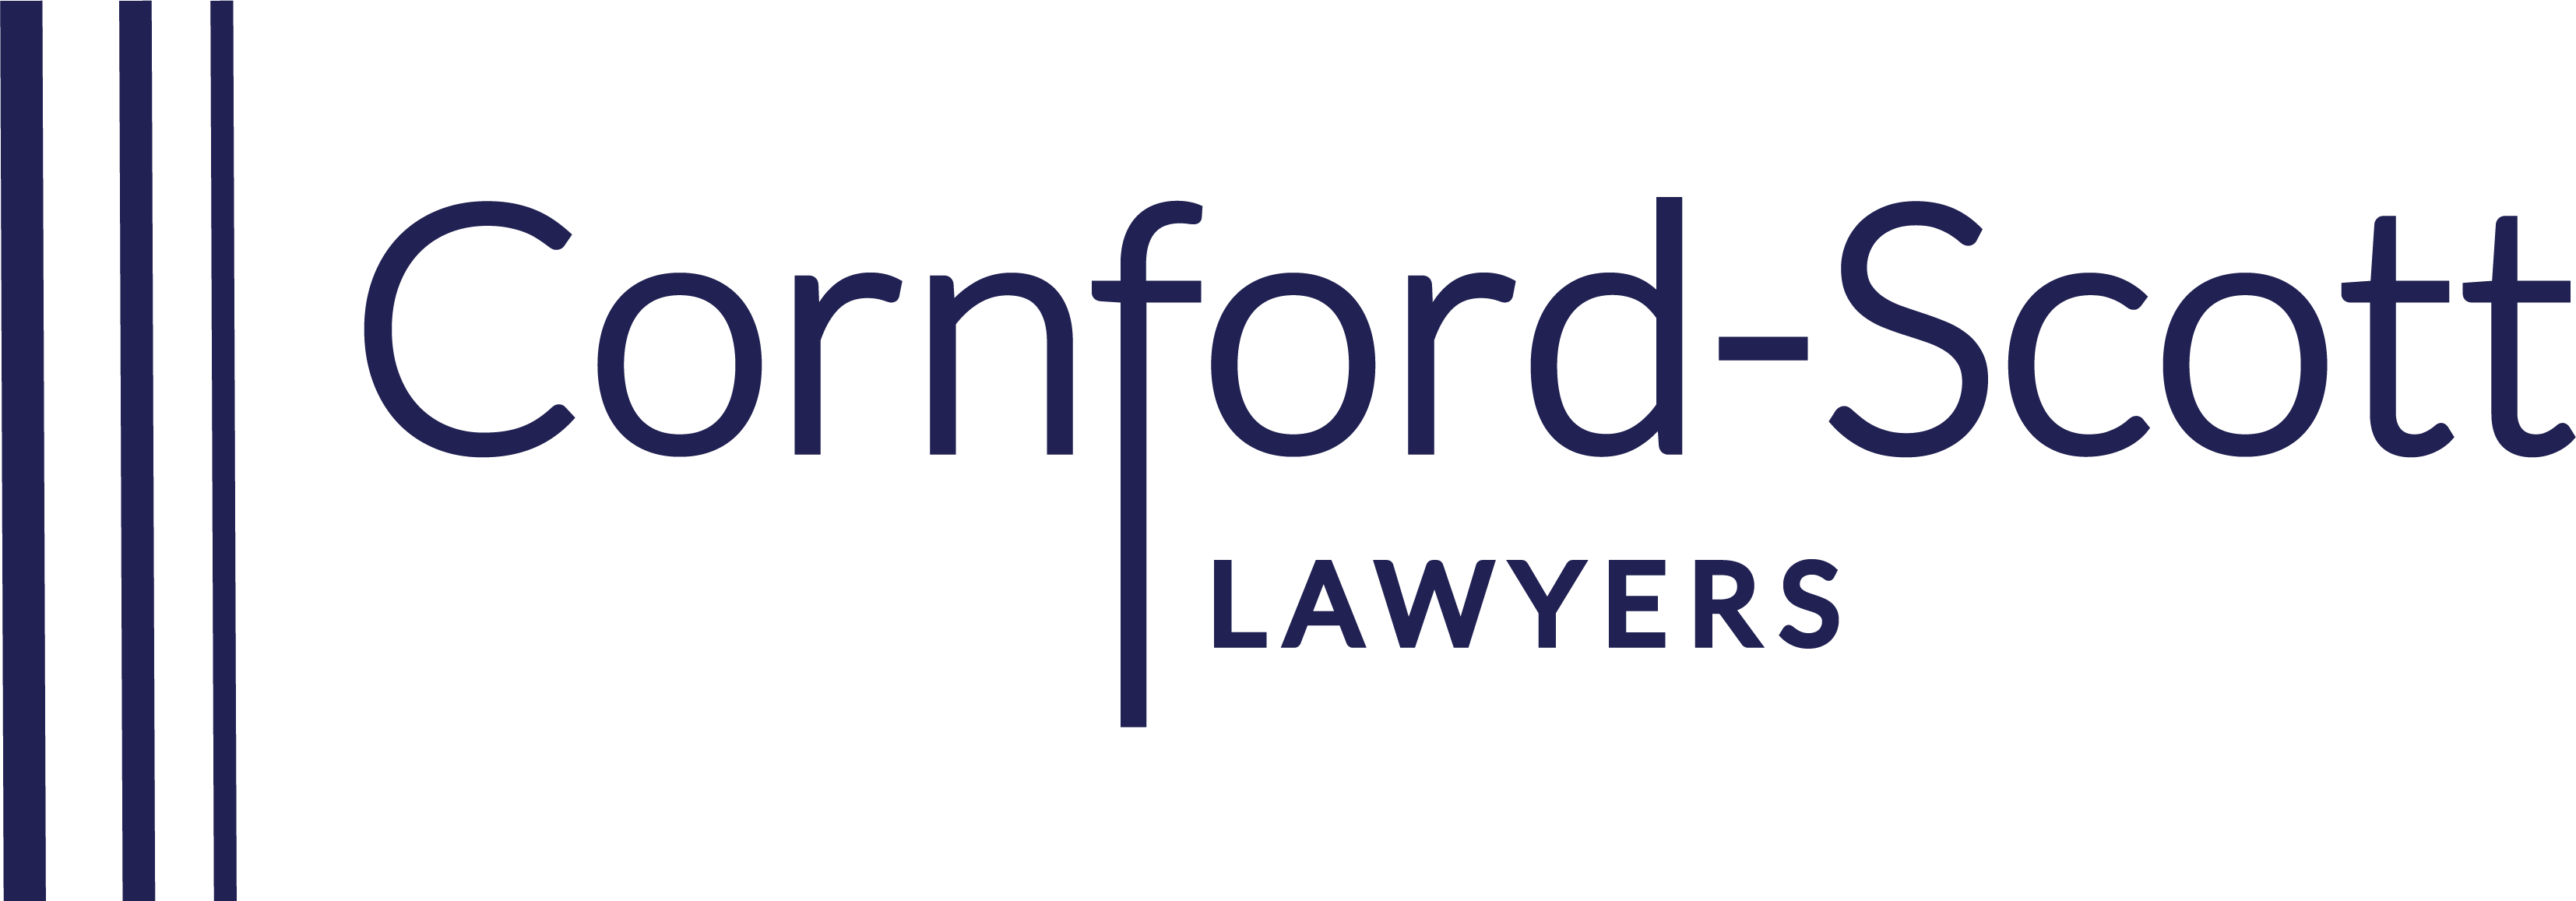 Cornford-Scott Lawyers